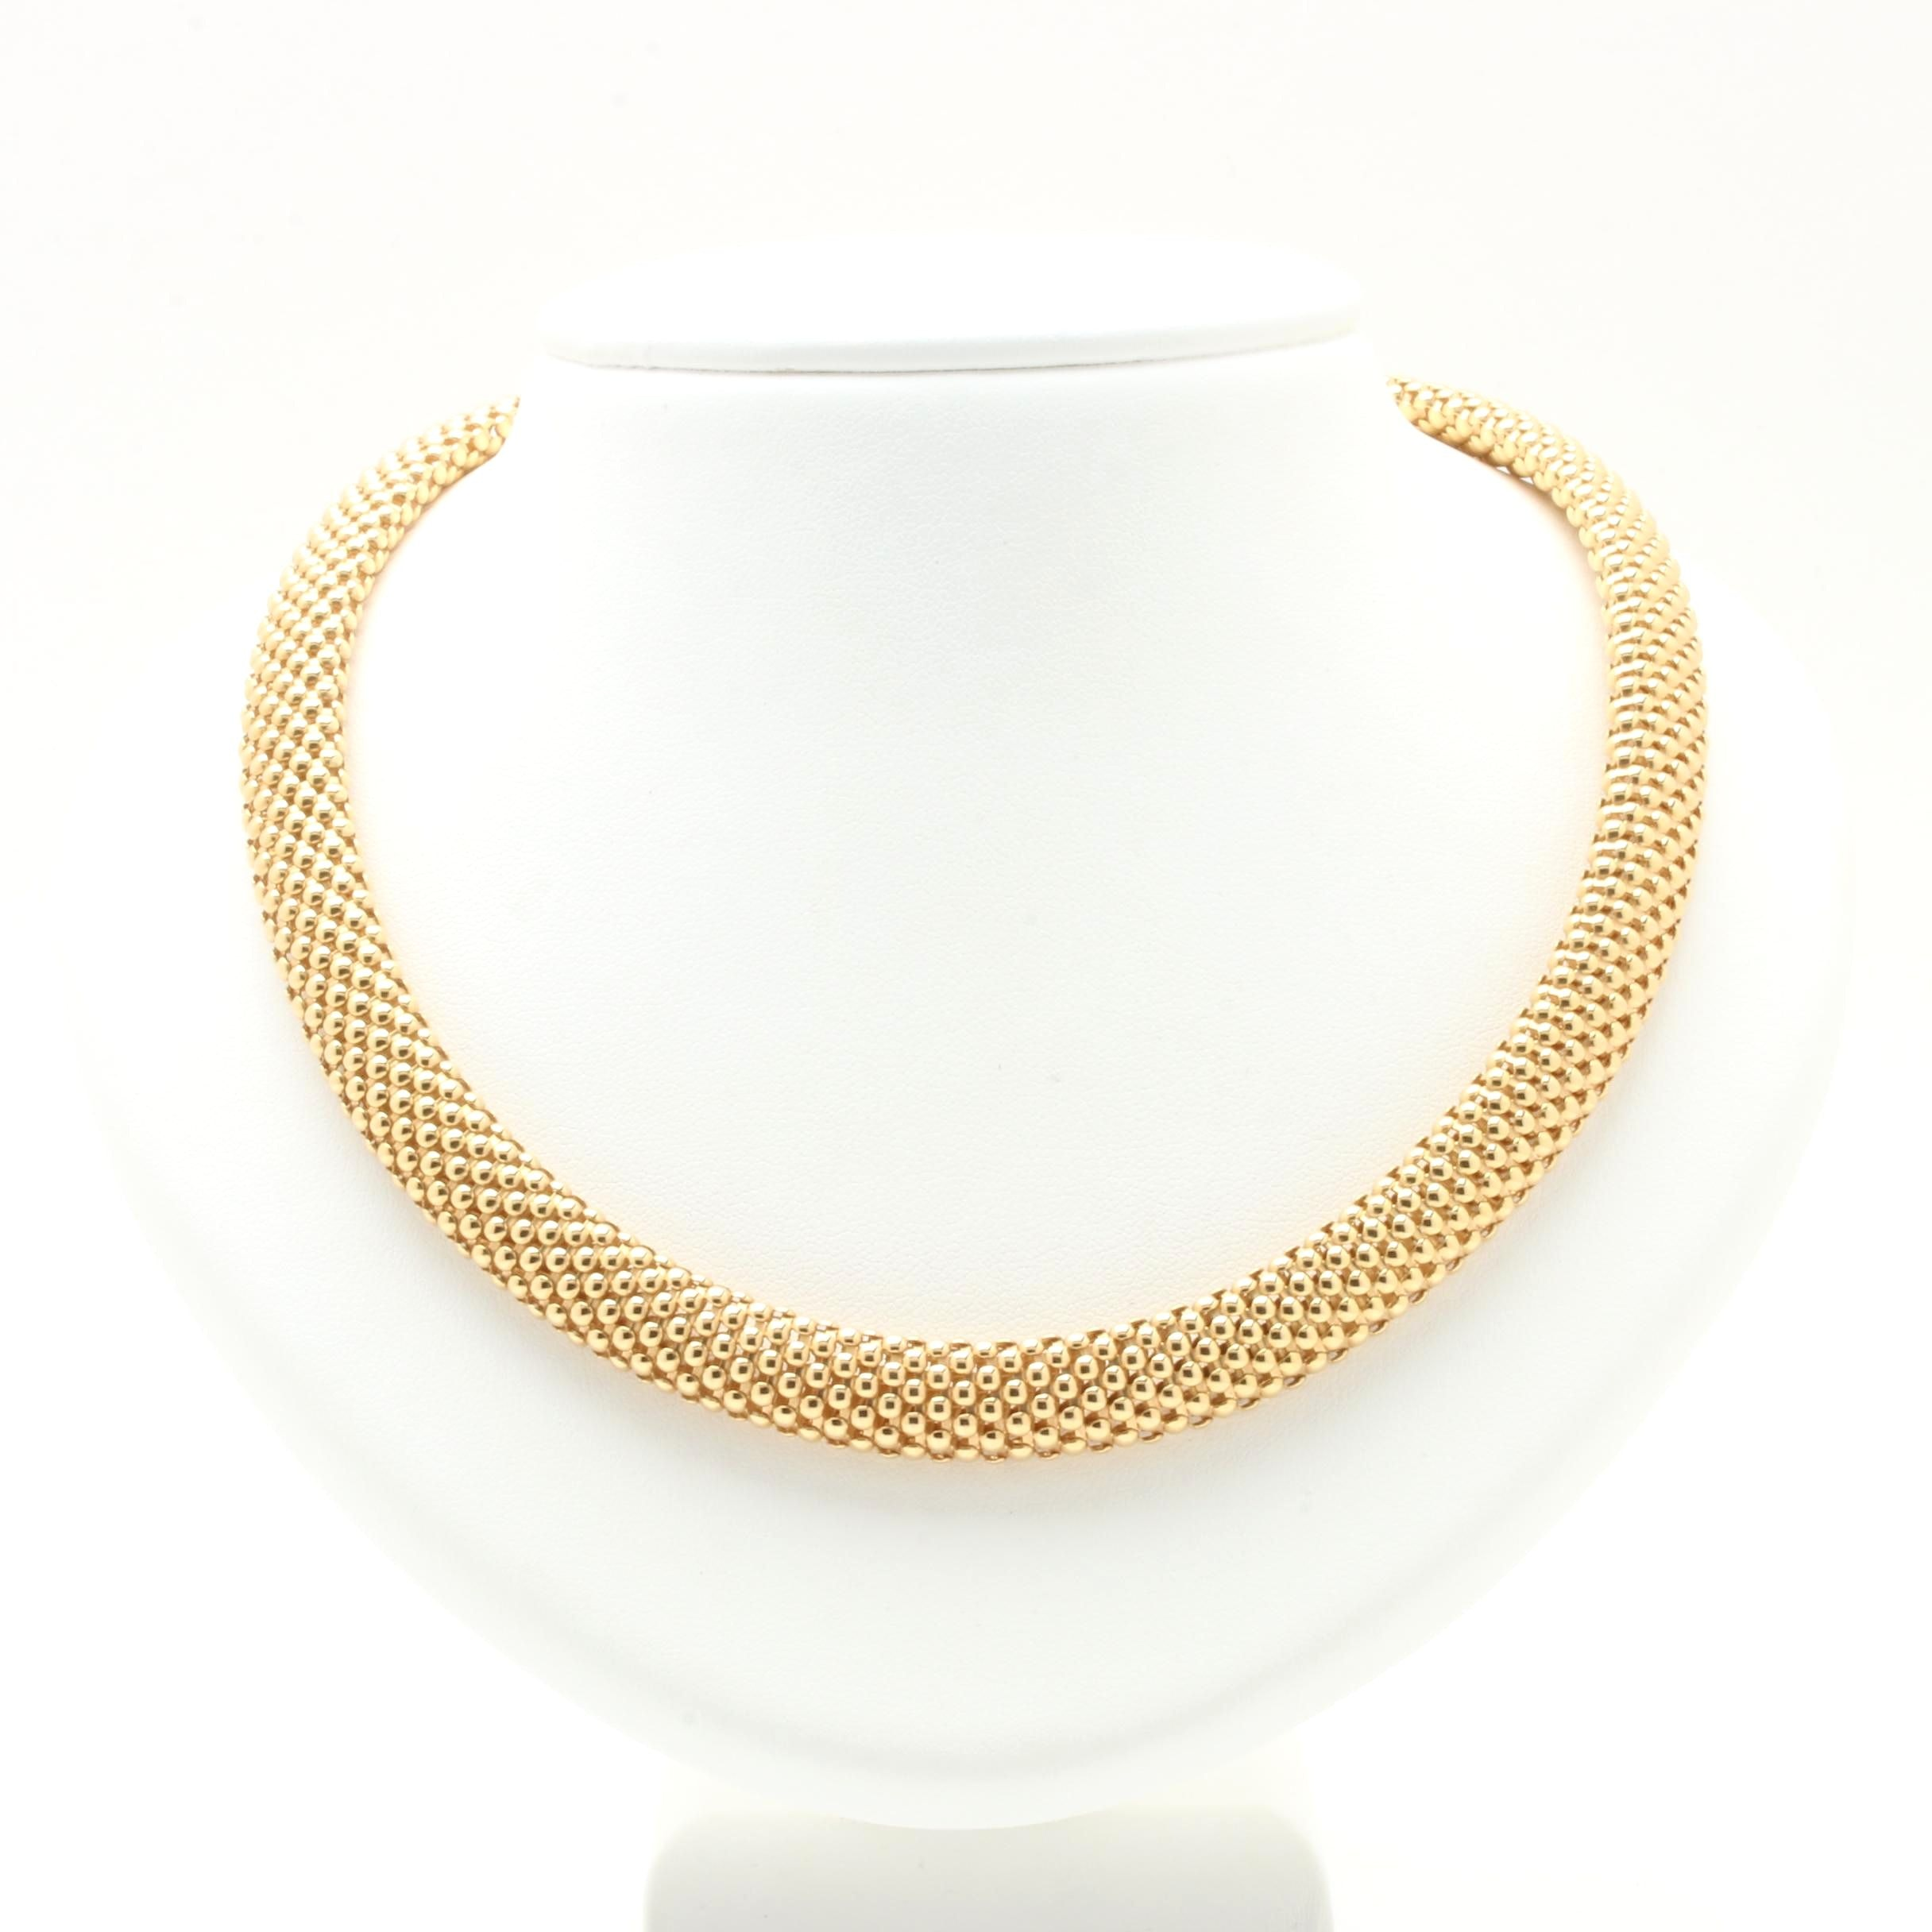 14K Yellow Gold Popcorn Chain Necklace